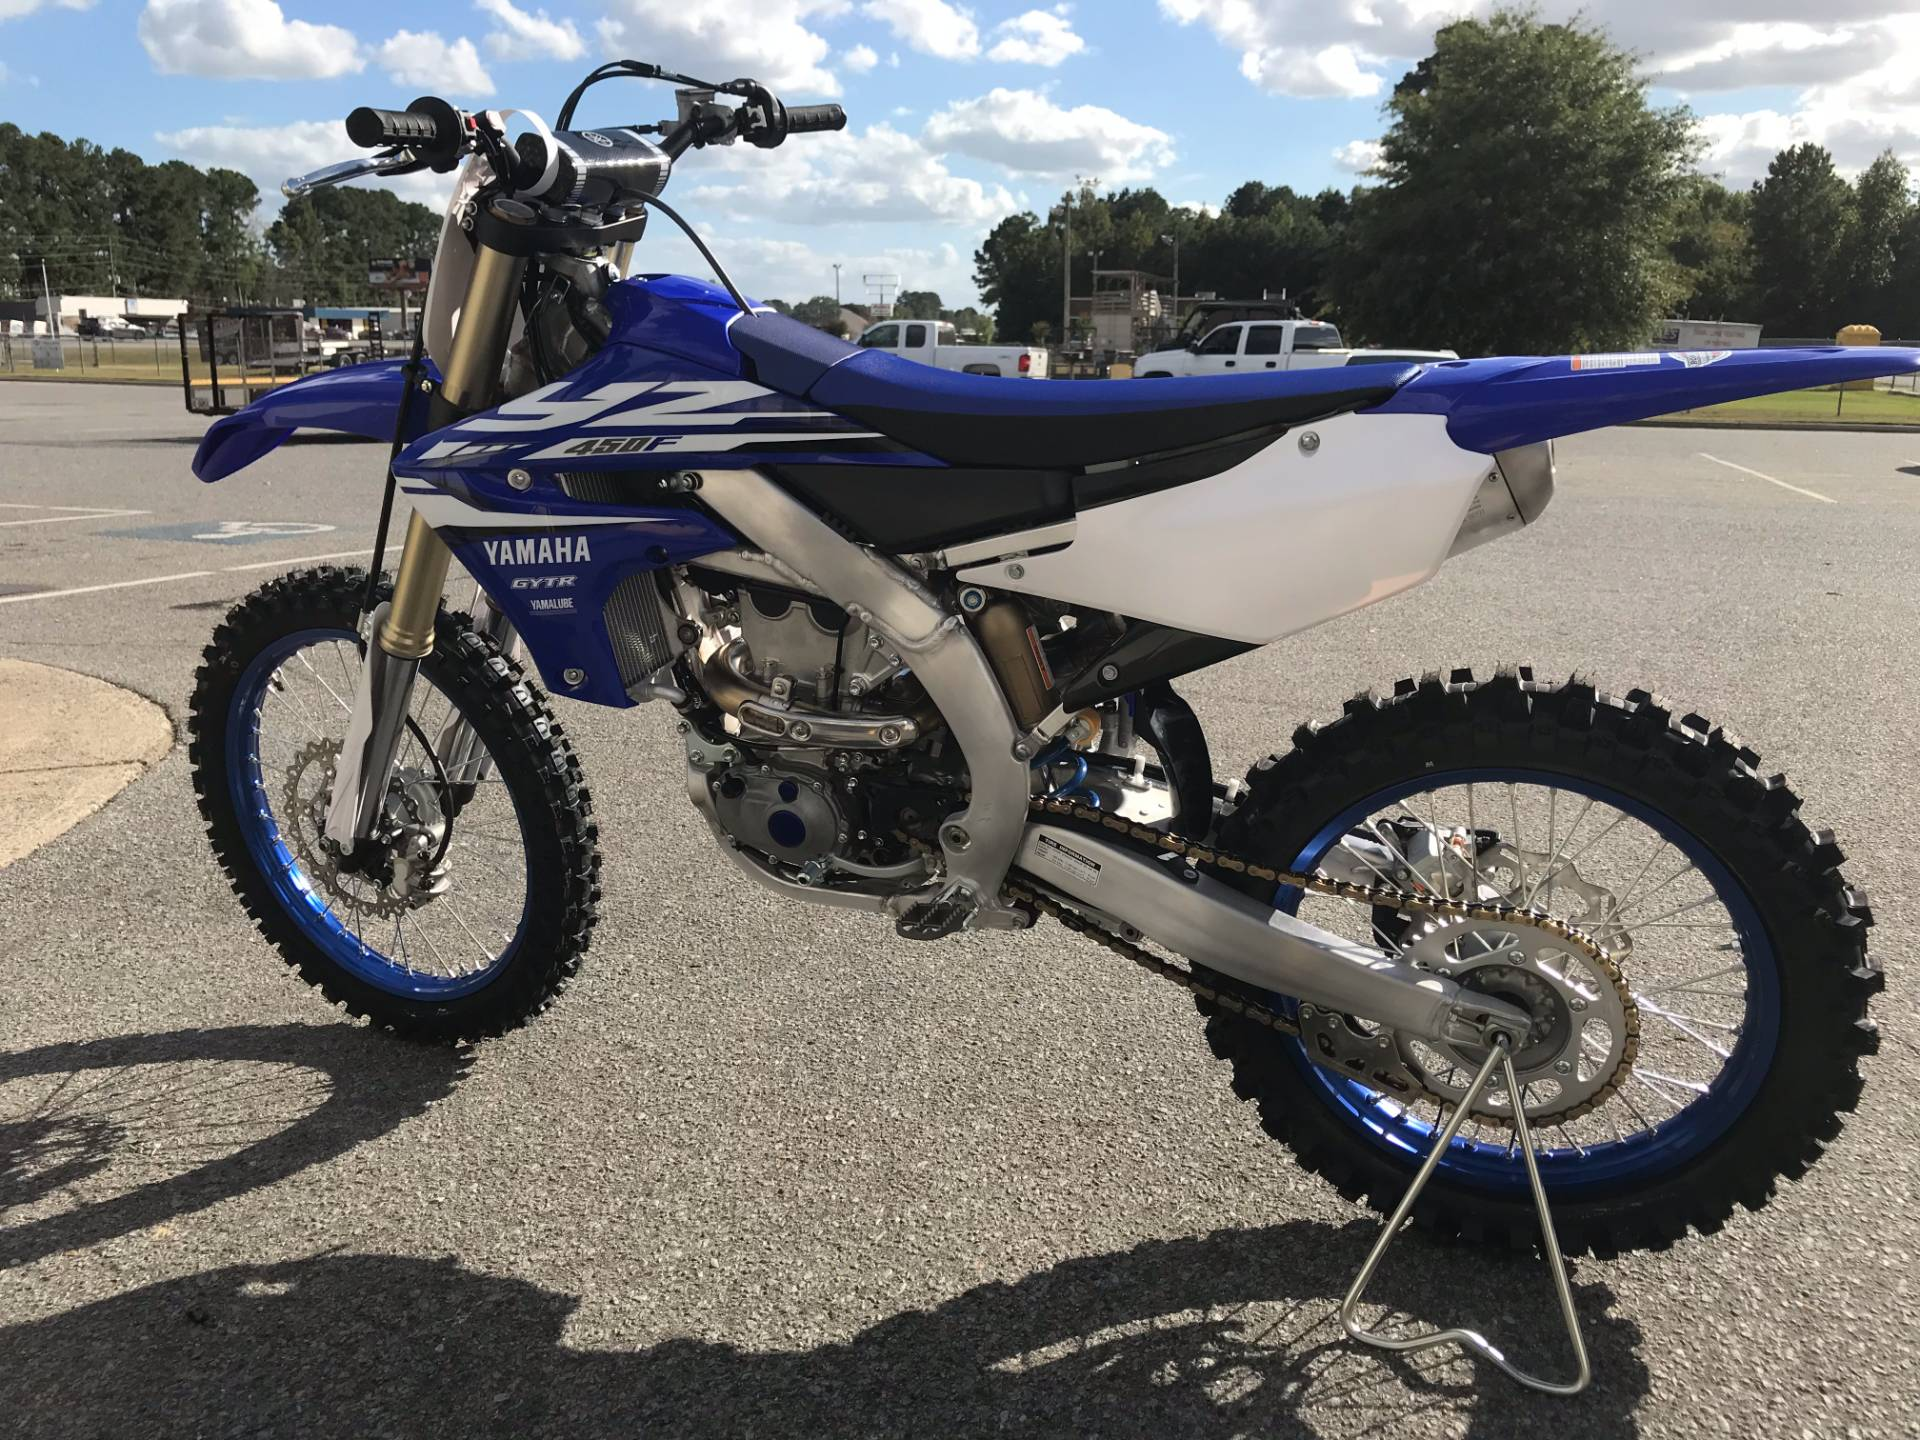 Scooters For Sale Greenville Nc >> 2018 Yamaha YZ450F For Sale Greenville, NC : 79617